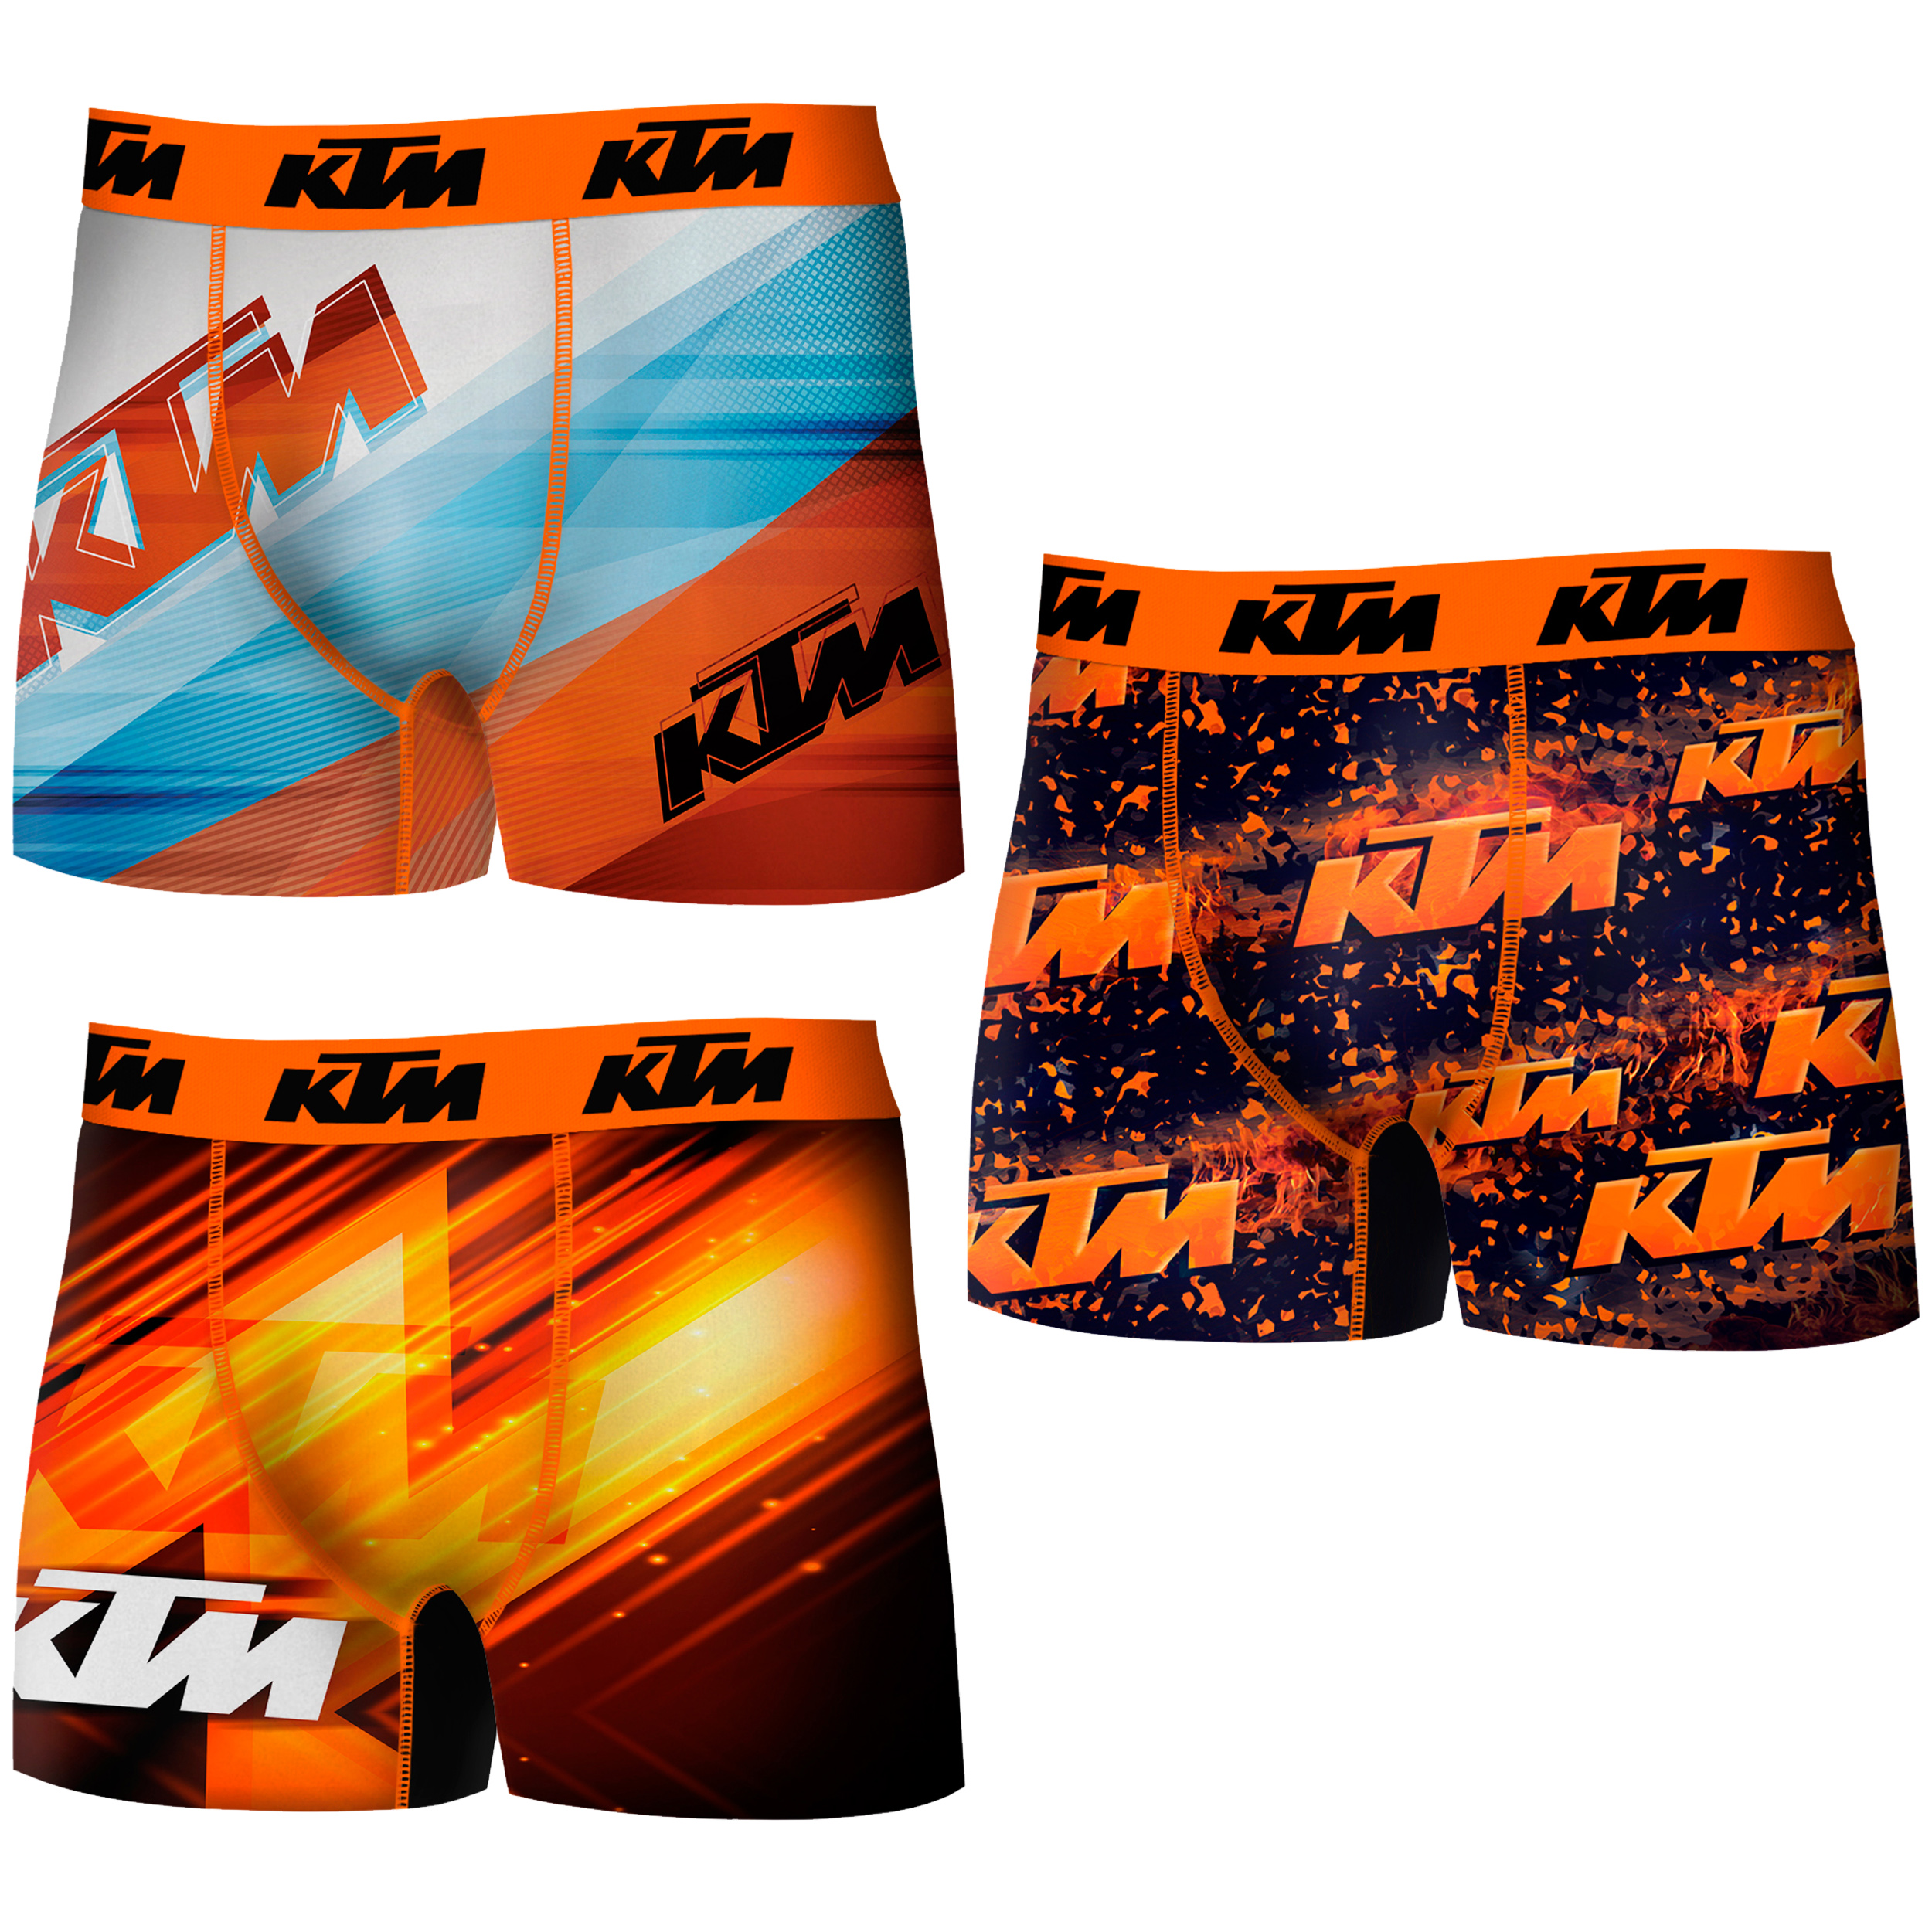 KTM Boxers Type Boxer Pack 3 Units In Colors Stampings For Men